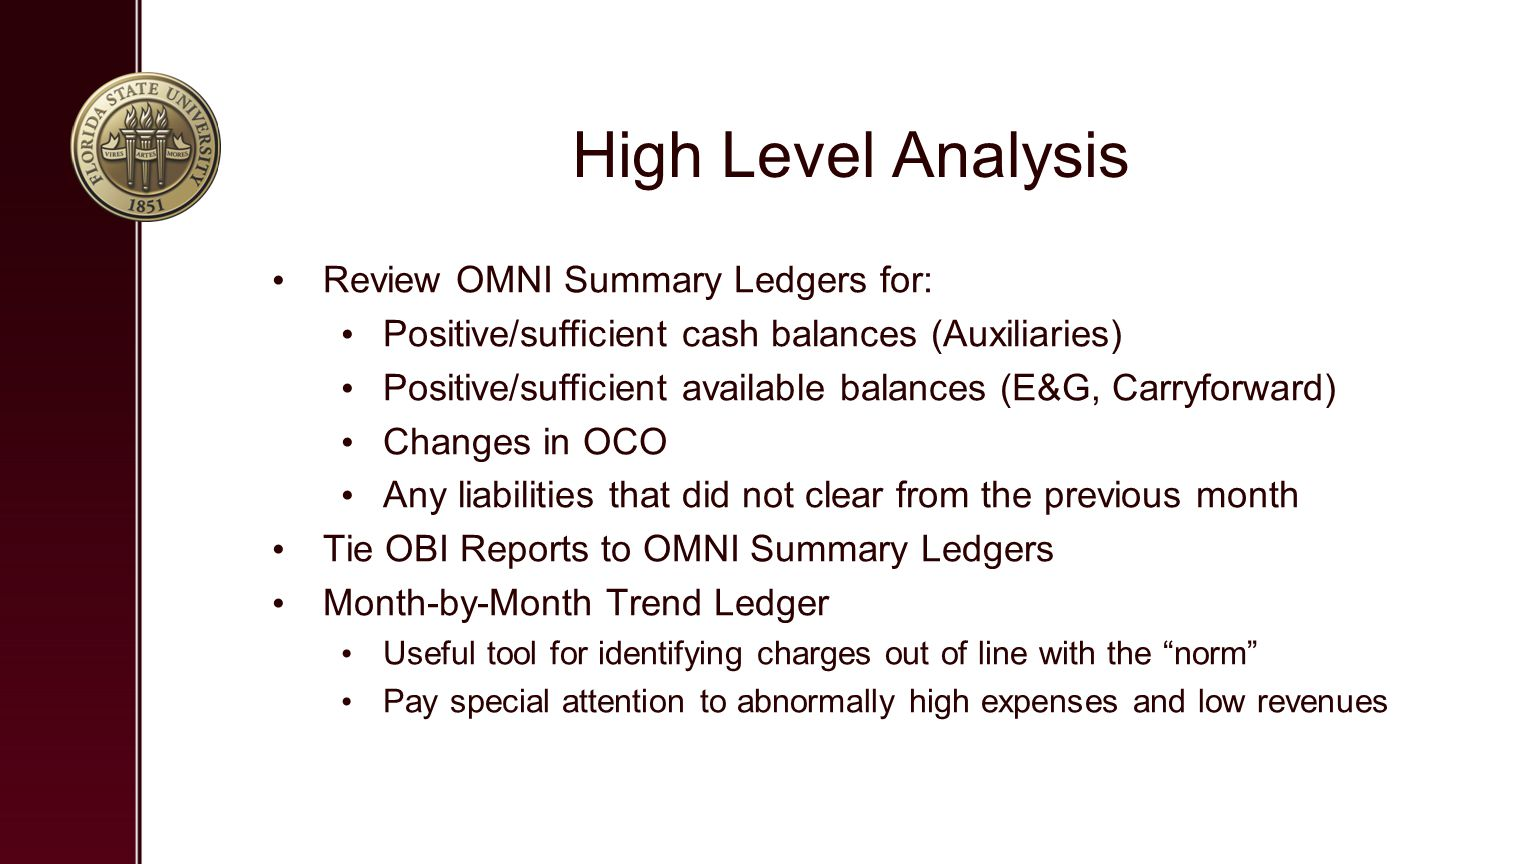 High Level Analysis Review OMNI Summary Ledgers for: Positive/sufficient cash balances (Auxiliaries) Positive/sufficient available balances (E&G, Carryforward) Changes in OCO Any liabilities that did not clear from the previous month Tie OBI Reports to OMNI Summary Ledgers Month-by-Month Trend Ledger Useful tool for identifying charges out of line with the norm Pay special attention to abnormally high expenses and low revenues